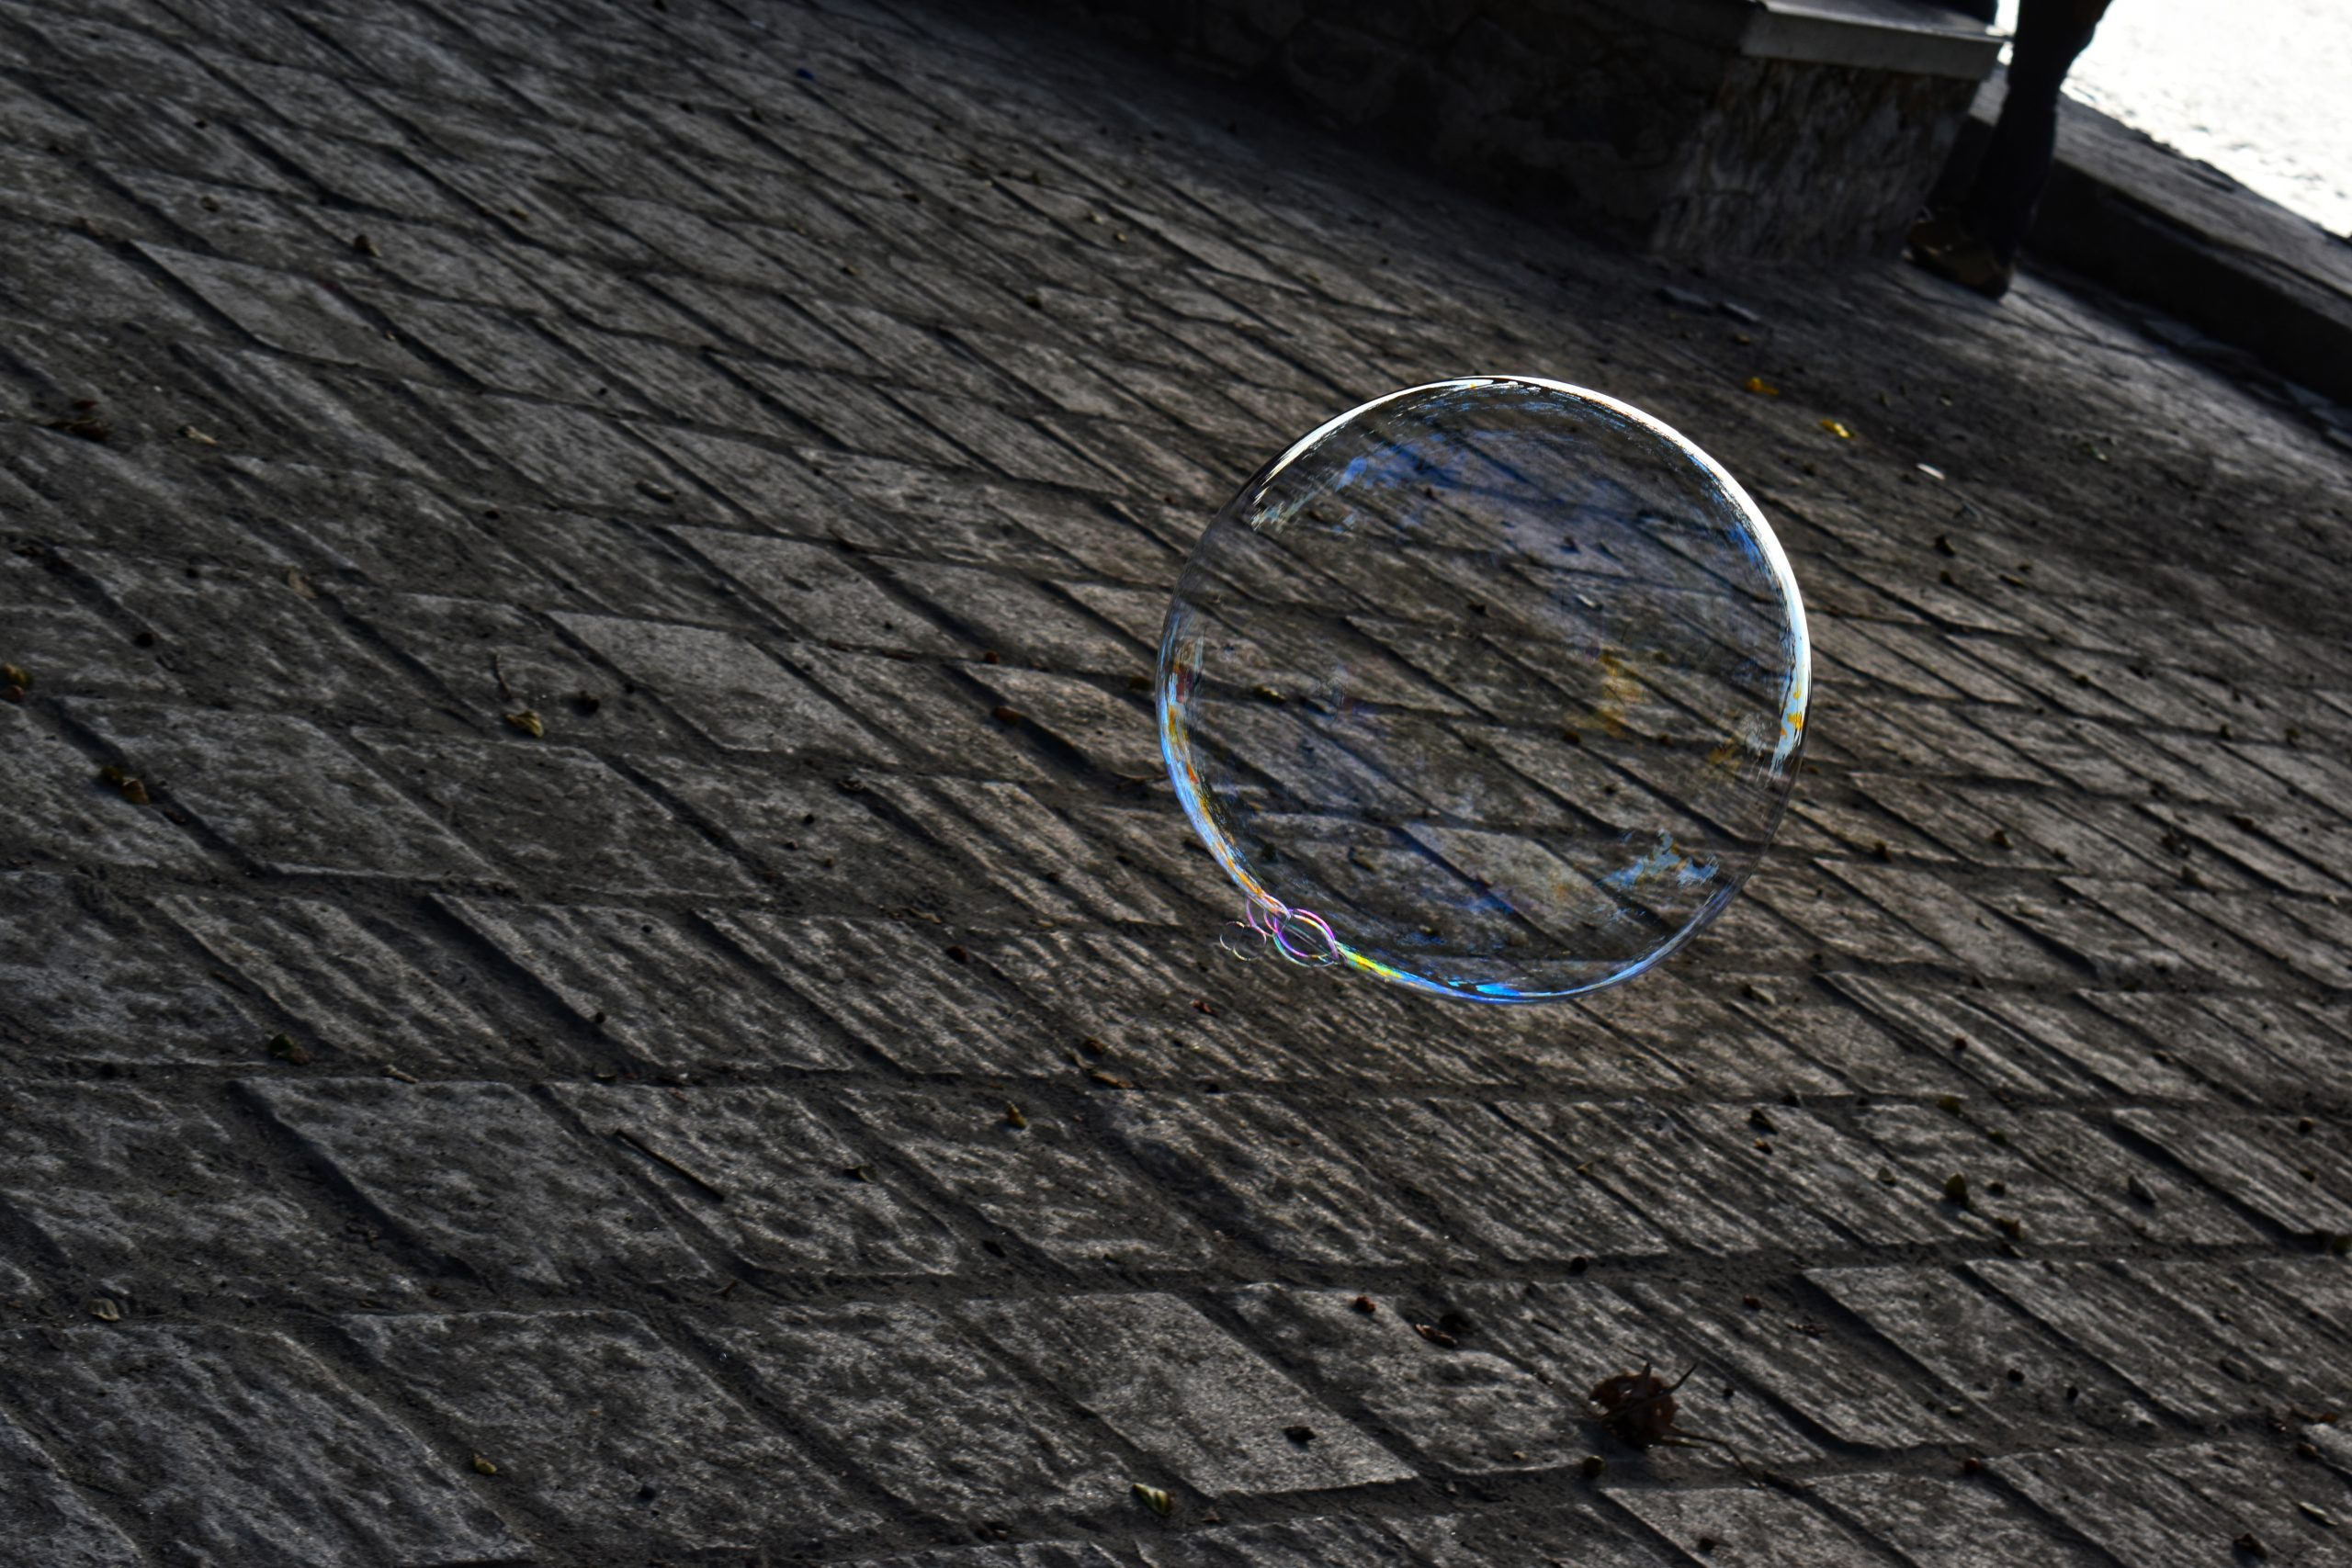 Bubble on the floor